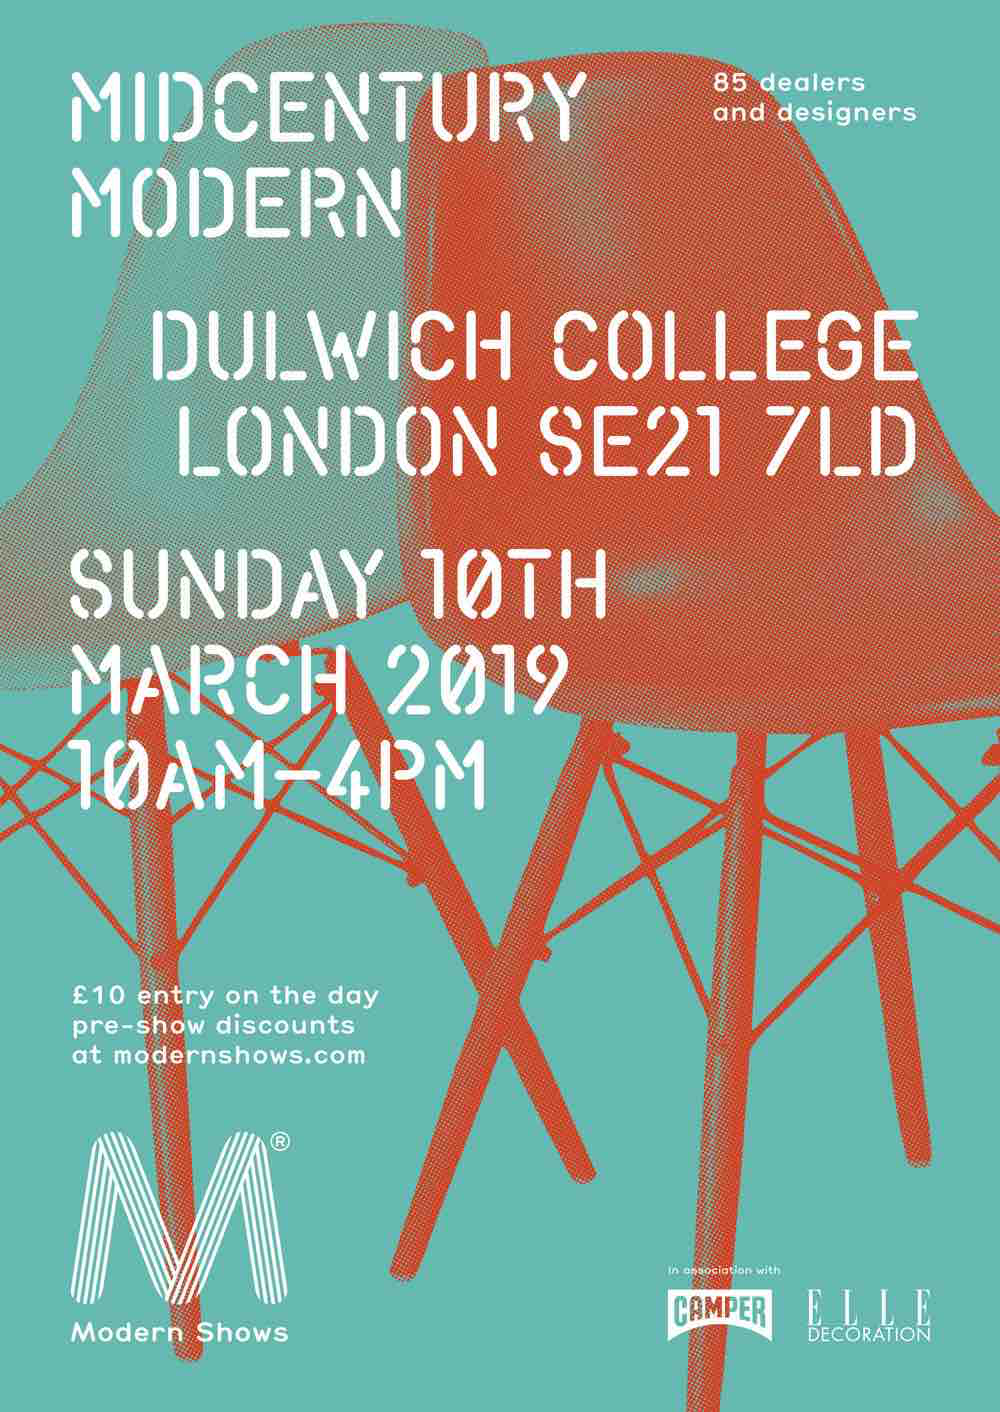 - POPPY IS THRILLED TO ANNOUNCE THAT SHE'LL BE EXHIBITING AGAIN AT MIDCENTURY MODERN, TAKING PLACE AT THE BEAUTIFUL DULWICH COLLEGE ON SUNDAY 10TH MARCH 2019.IF YOU'RE NOT FAMILIAR WITH THE SHOW, IT'S AN INSPIRING MIX OF MIDCENTURY FURNITURE AND COLLECTIBLES, COMBINED WITH A COMPLIMENTARY SELECTION OF CONTEMPORARY DESIGN.VISIT WWW.MODERNSHOWS.COM FOR FURTHER DETAILS (AND ADVANCED TICKET DISCOUNTS)POPPY WILL BE LOCATED UPSTAIRS IN THE CONTEMPORARY ROOM.